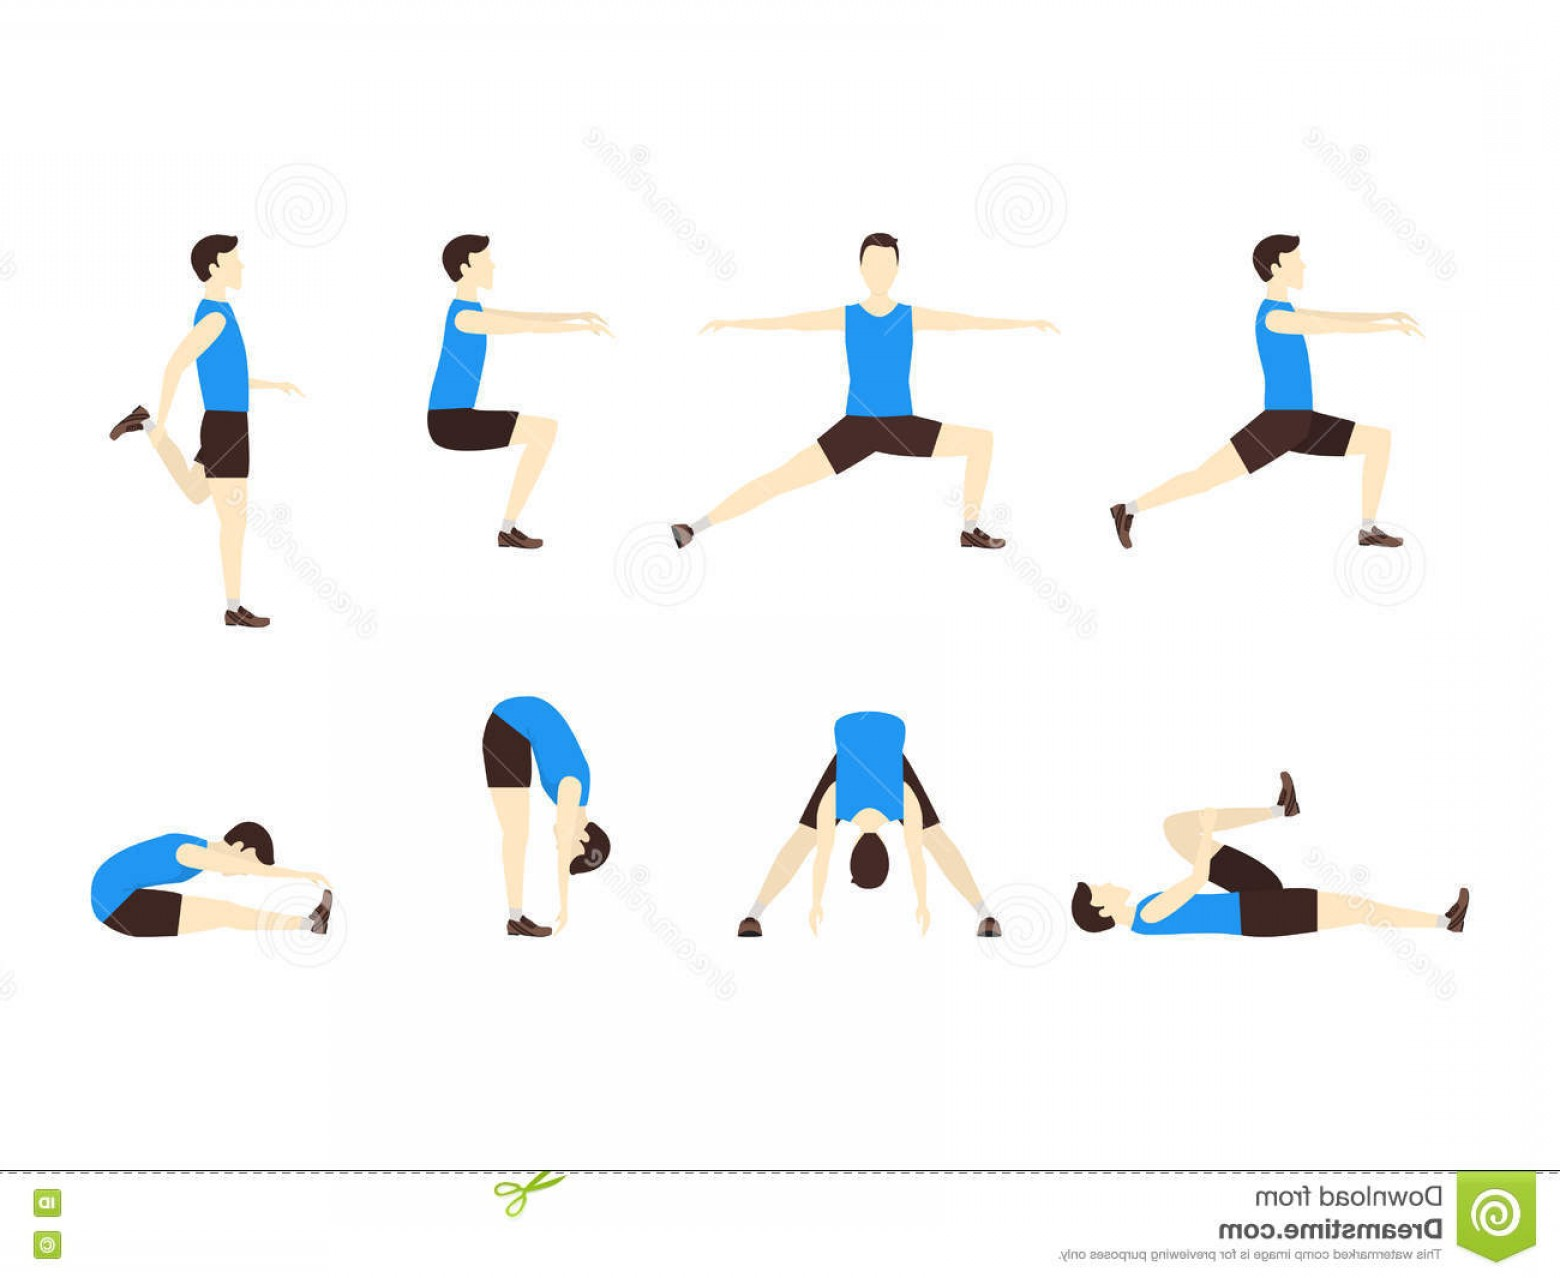 Man Vector Exercise: Stock Illustration Stretching Exercise Set Man Flat Vector Design Style Sports Fitness Health Illustration Image